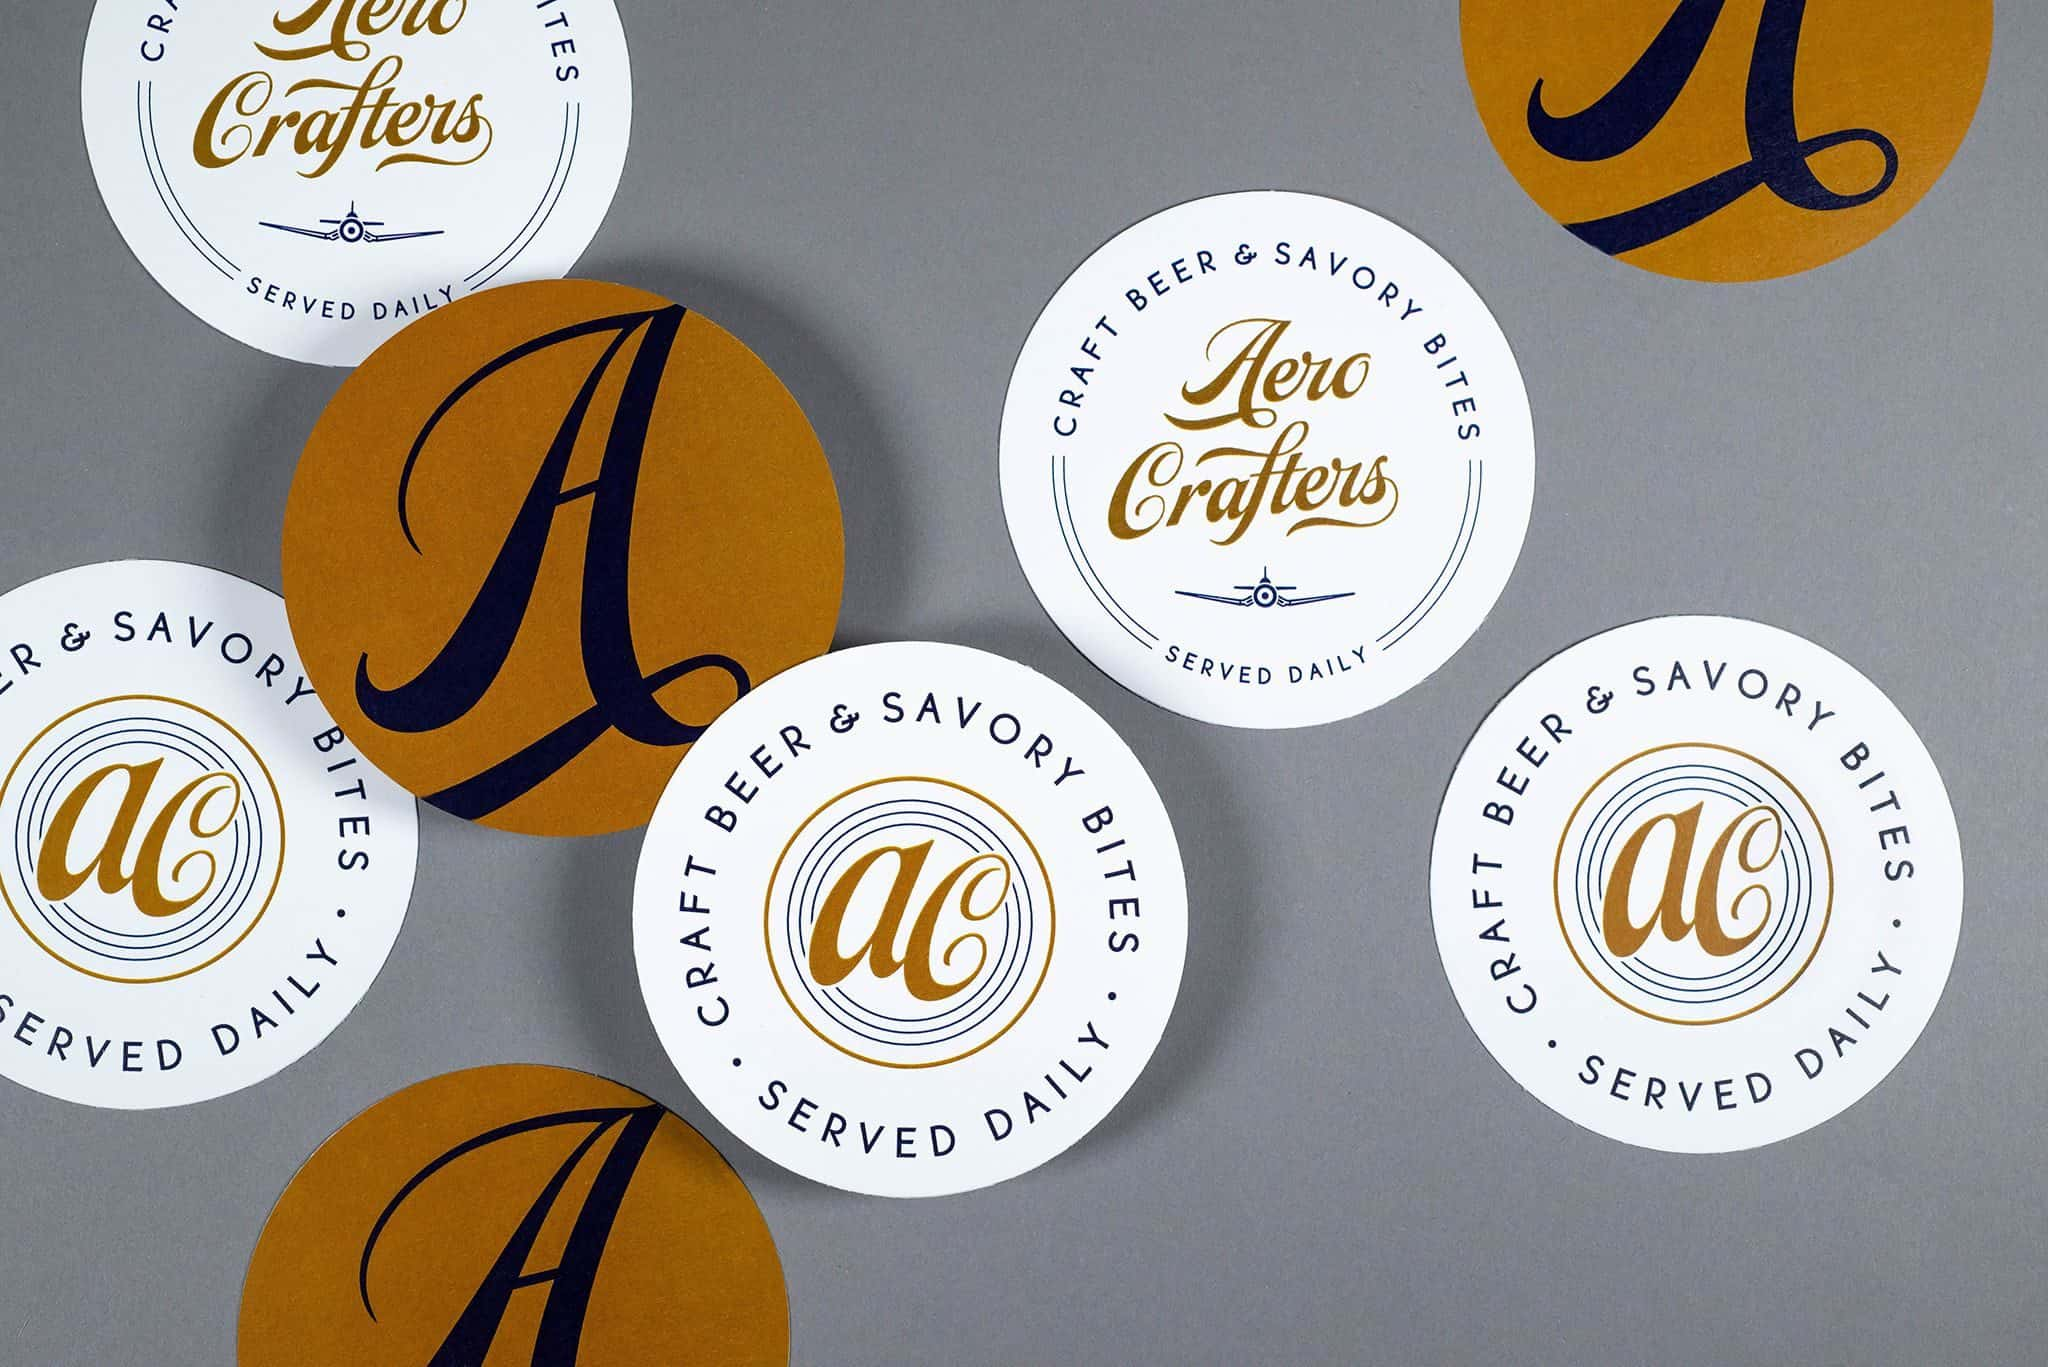 Custom Beer Coasters | Brand development, signage, and graphic design for Aero Crafters Beer Garden & Gastropub, Victoria, Texas | Field of Study: A Design & Branding Consultancy.